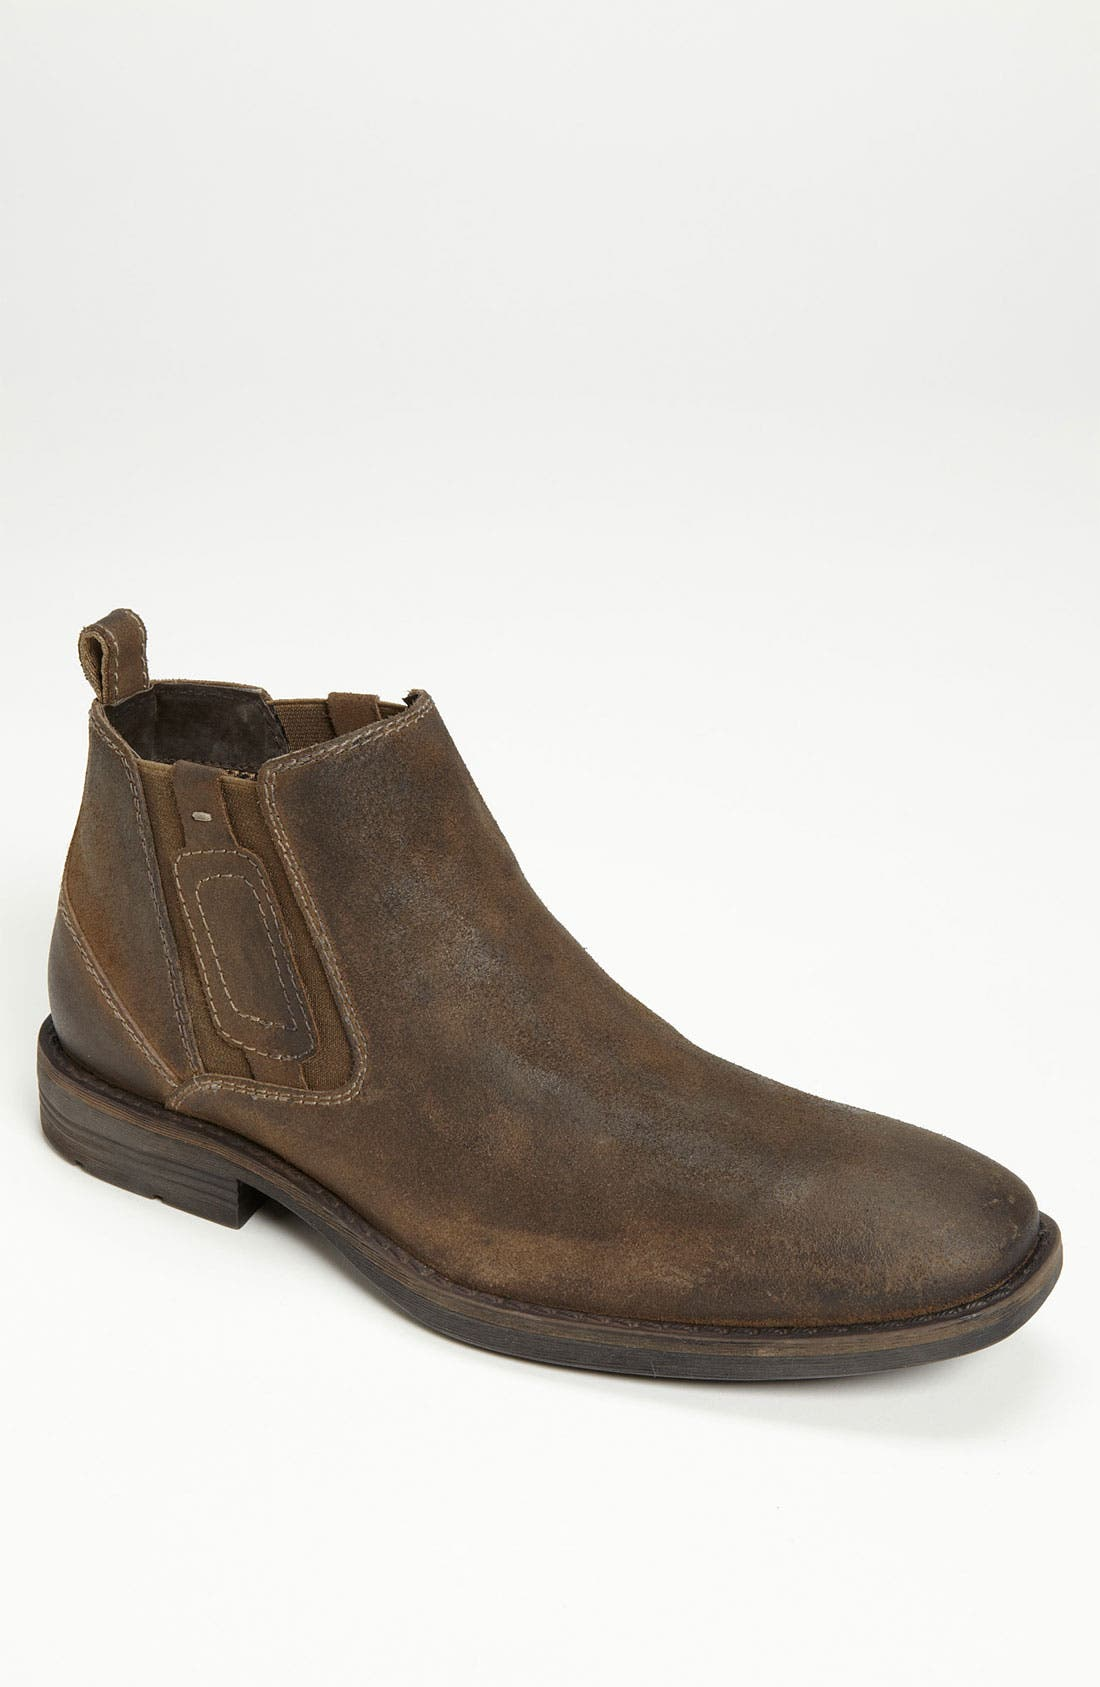 Alternate Image 1 Selected - Steve Madden 'Farris' Boot